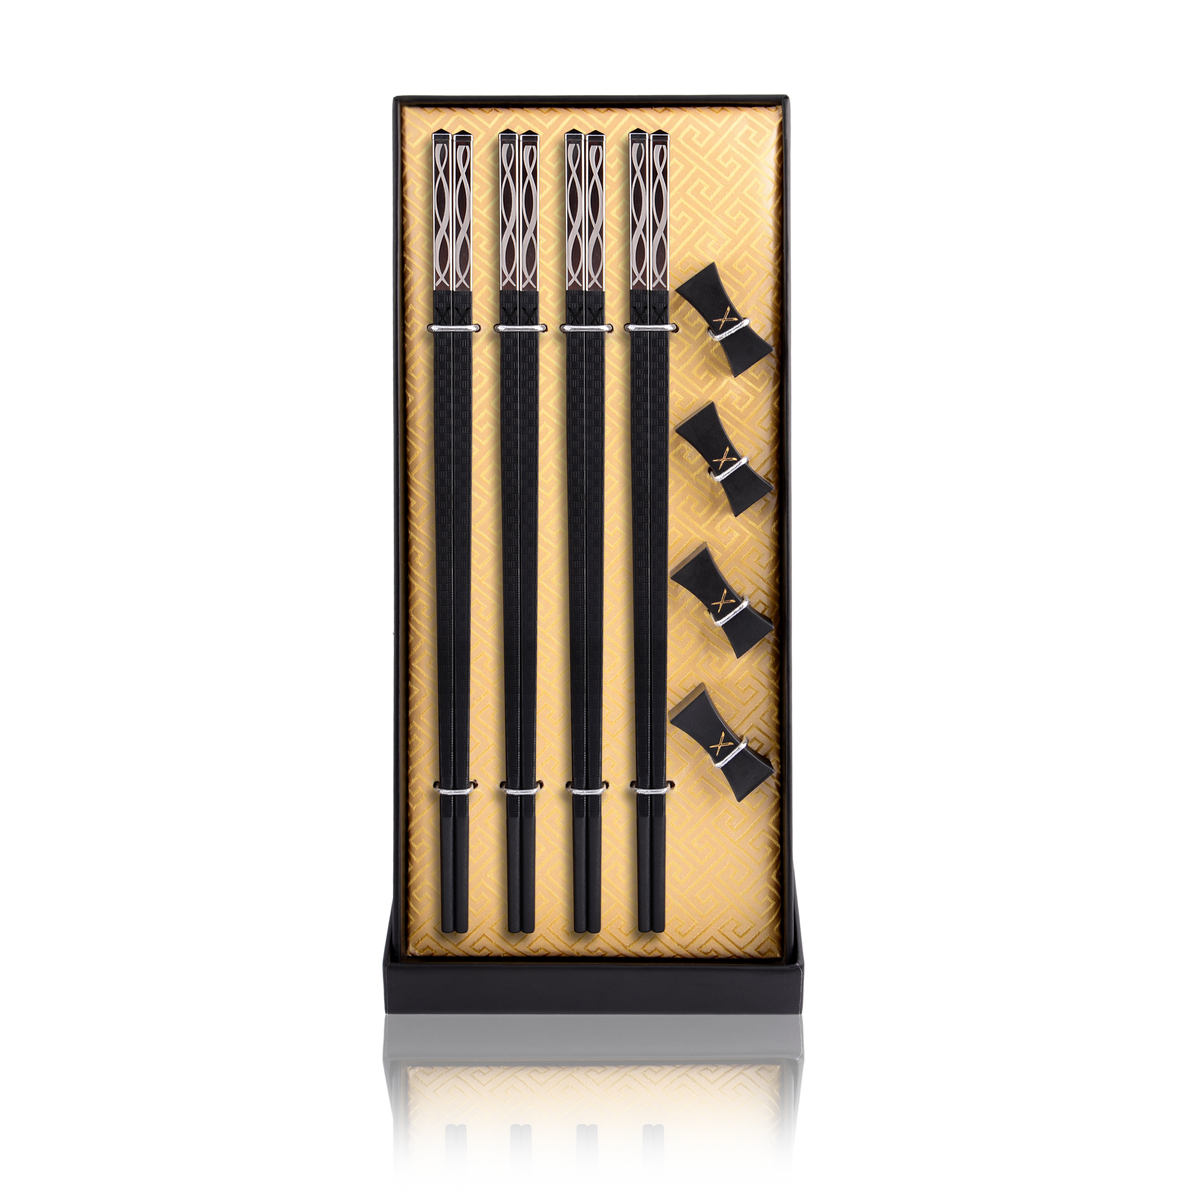 Luxury Chopsticks Set. Our chopsticks are luxurious, reusable and safe to use. Packed in a beautiful set, our designs are modern, traditional and elegant. Infinity - LuxSticks